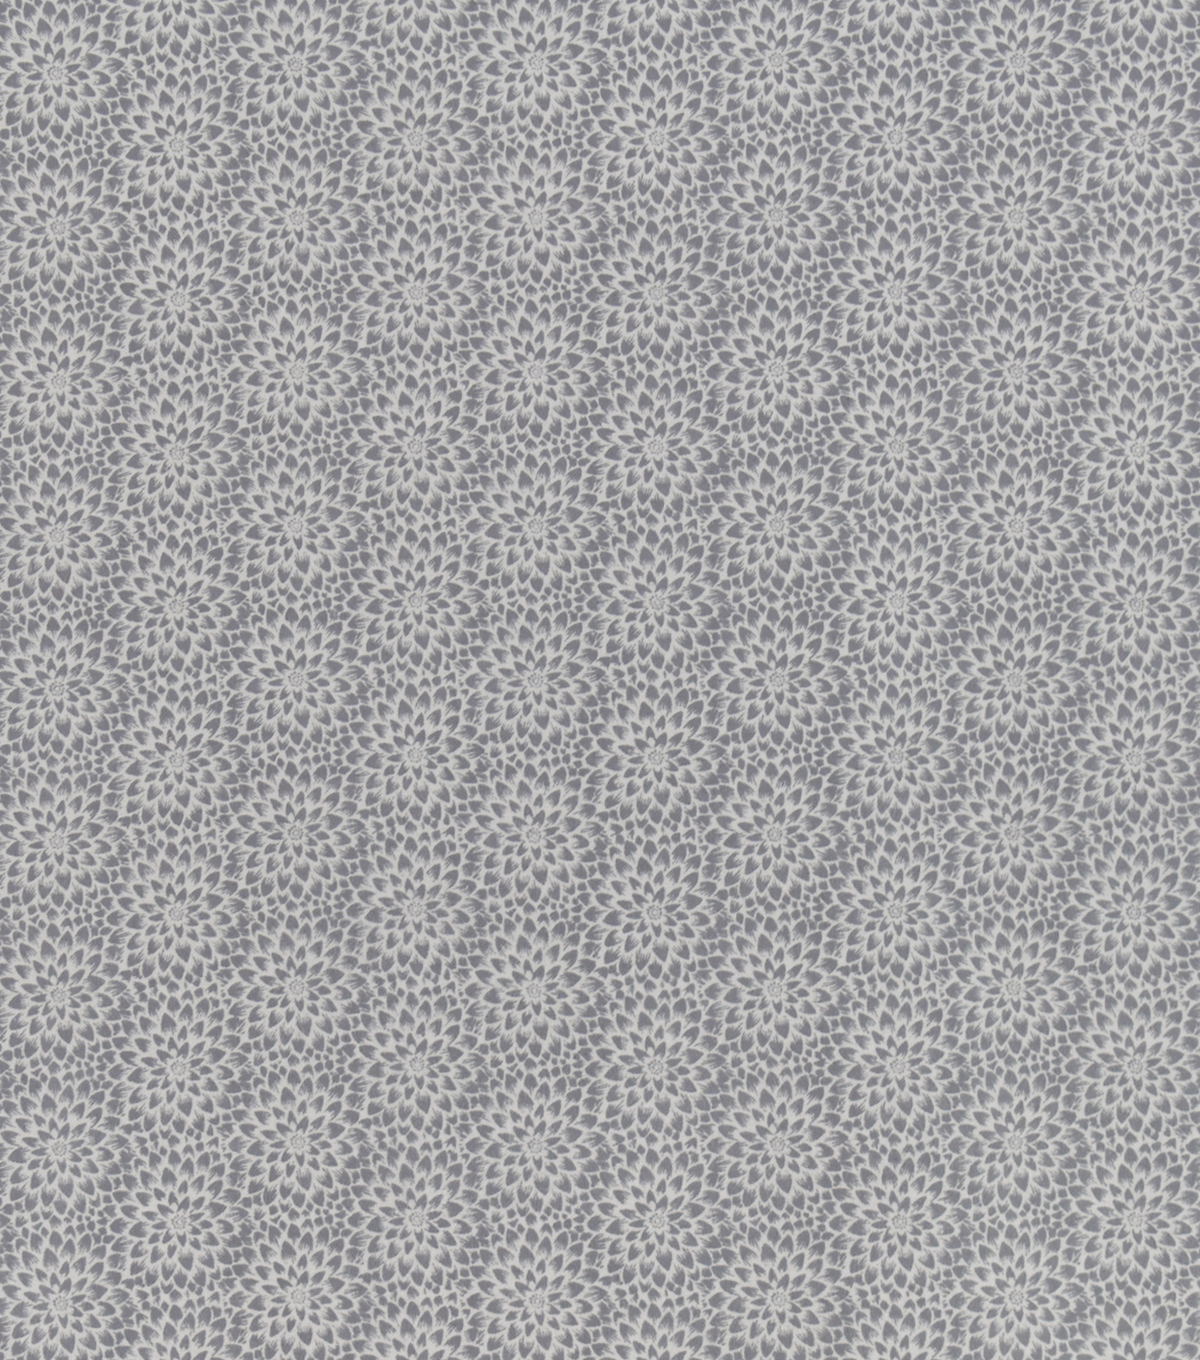 Snuggle Flannel Fabric-Gray Burst